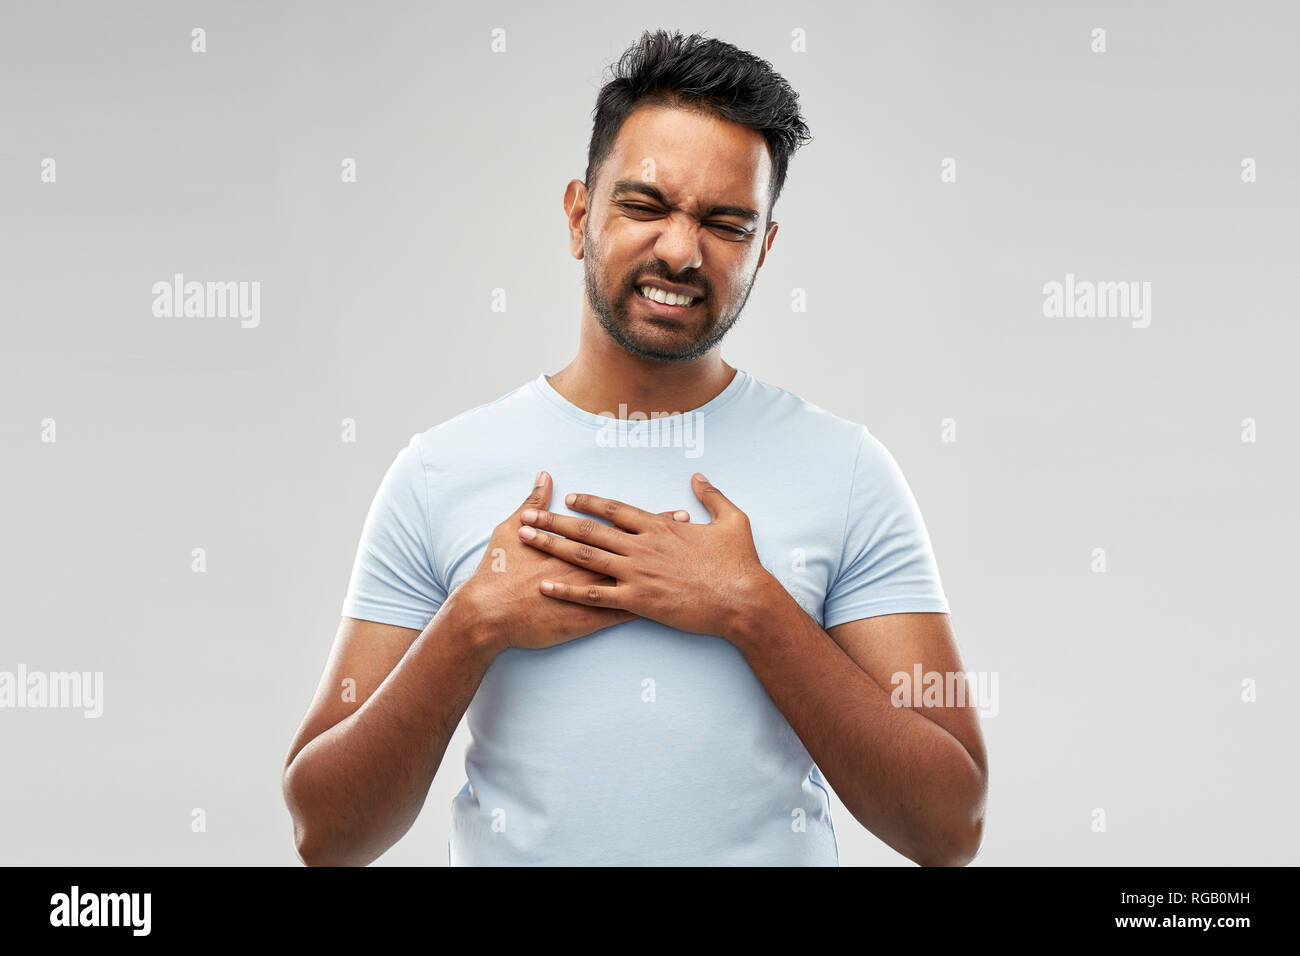 unhappy indian man suffering from heartache - Stock Image